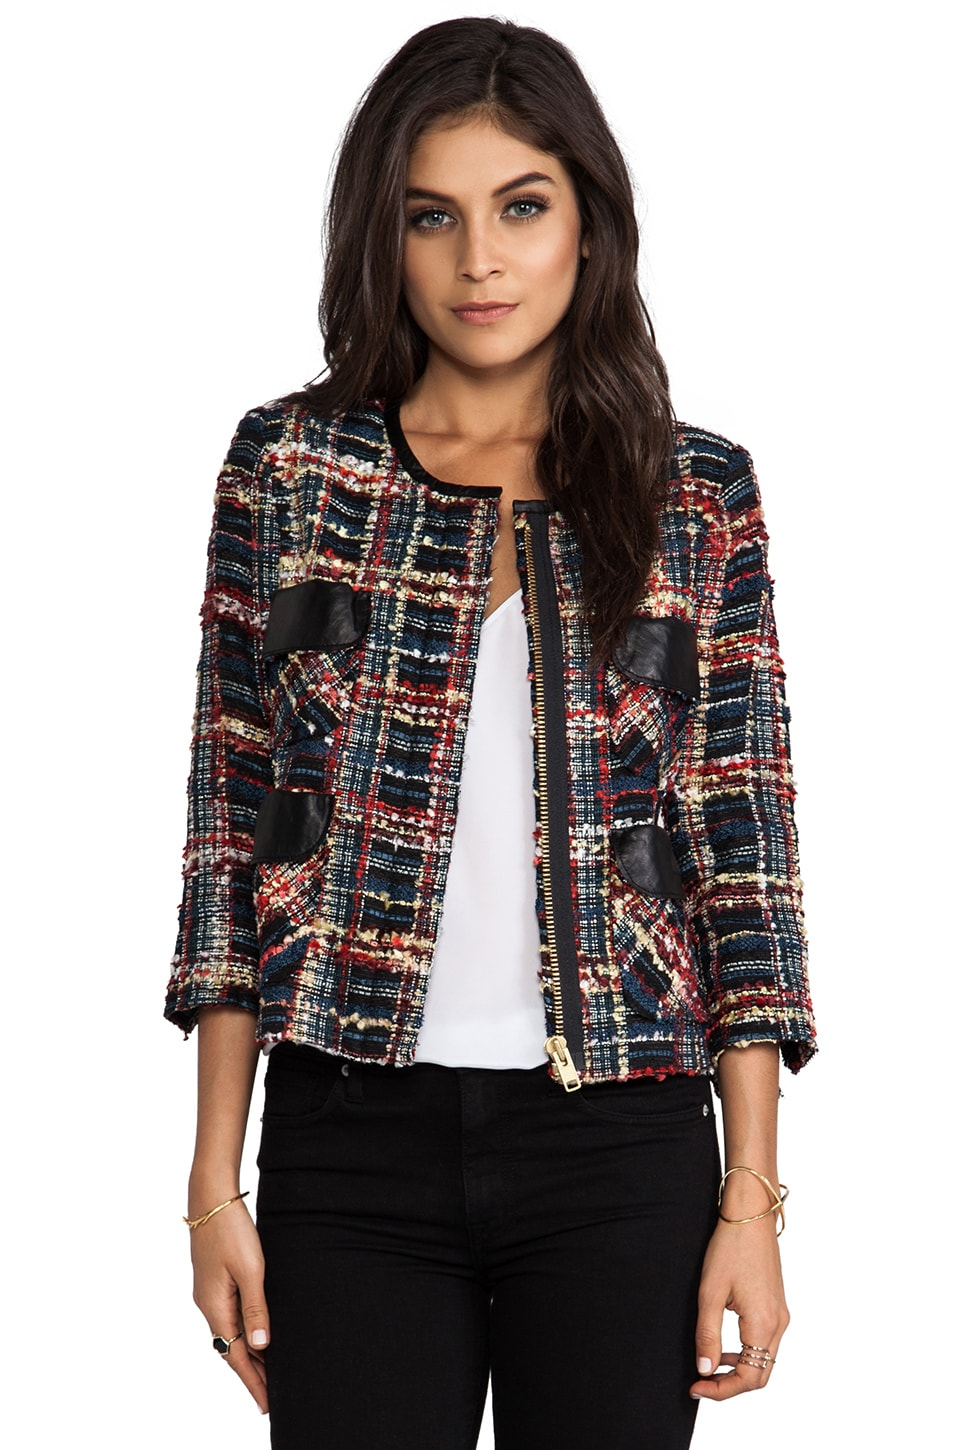 Smythe Boucle Jacket in Navy/Splice Plaid